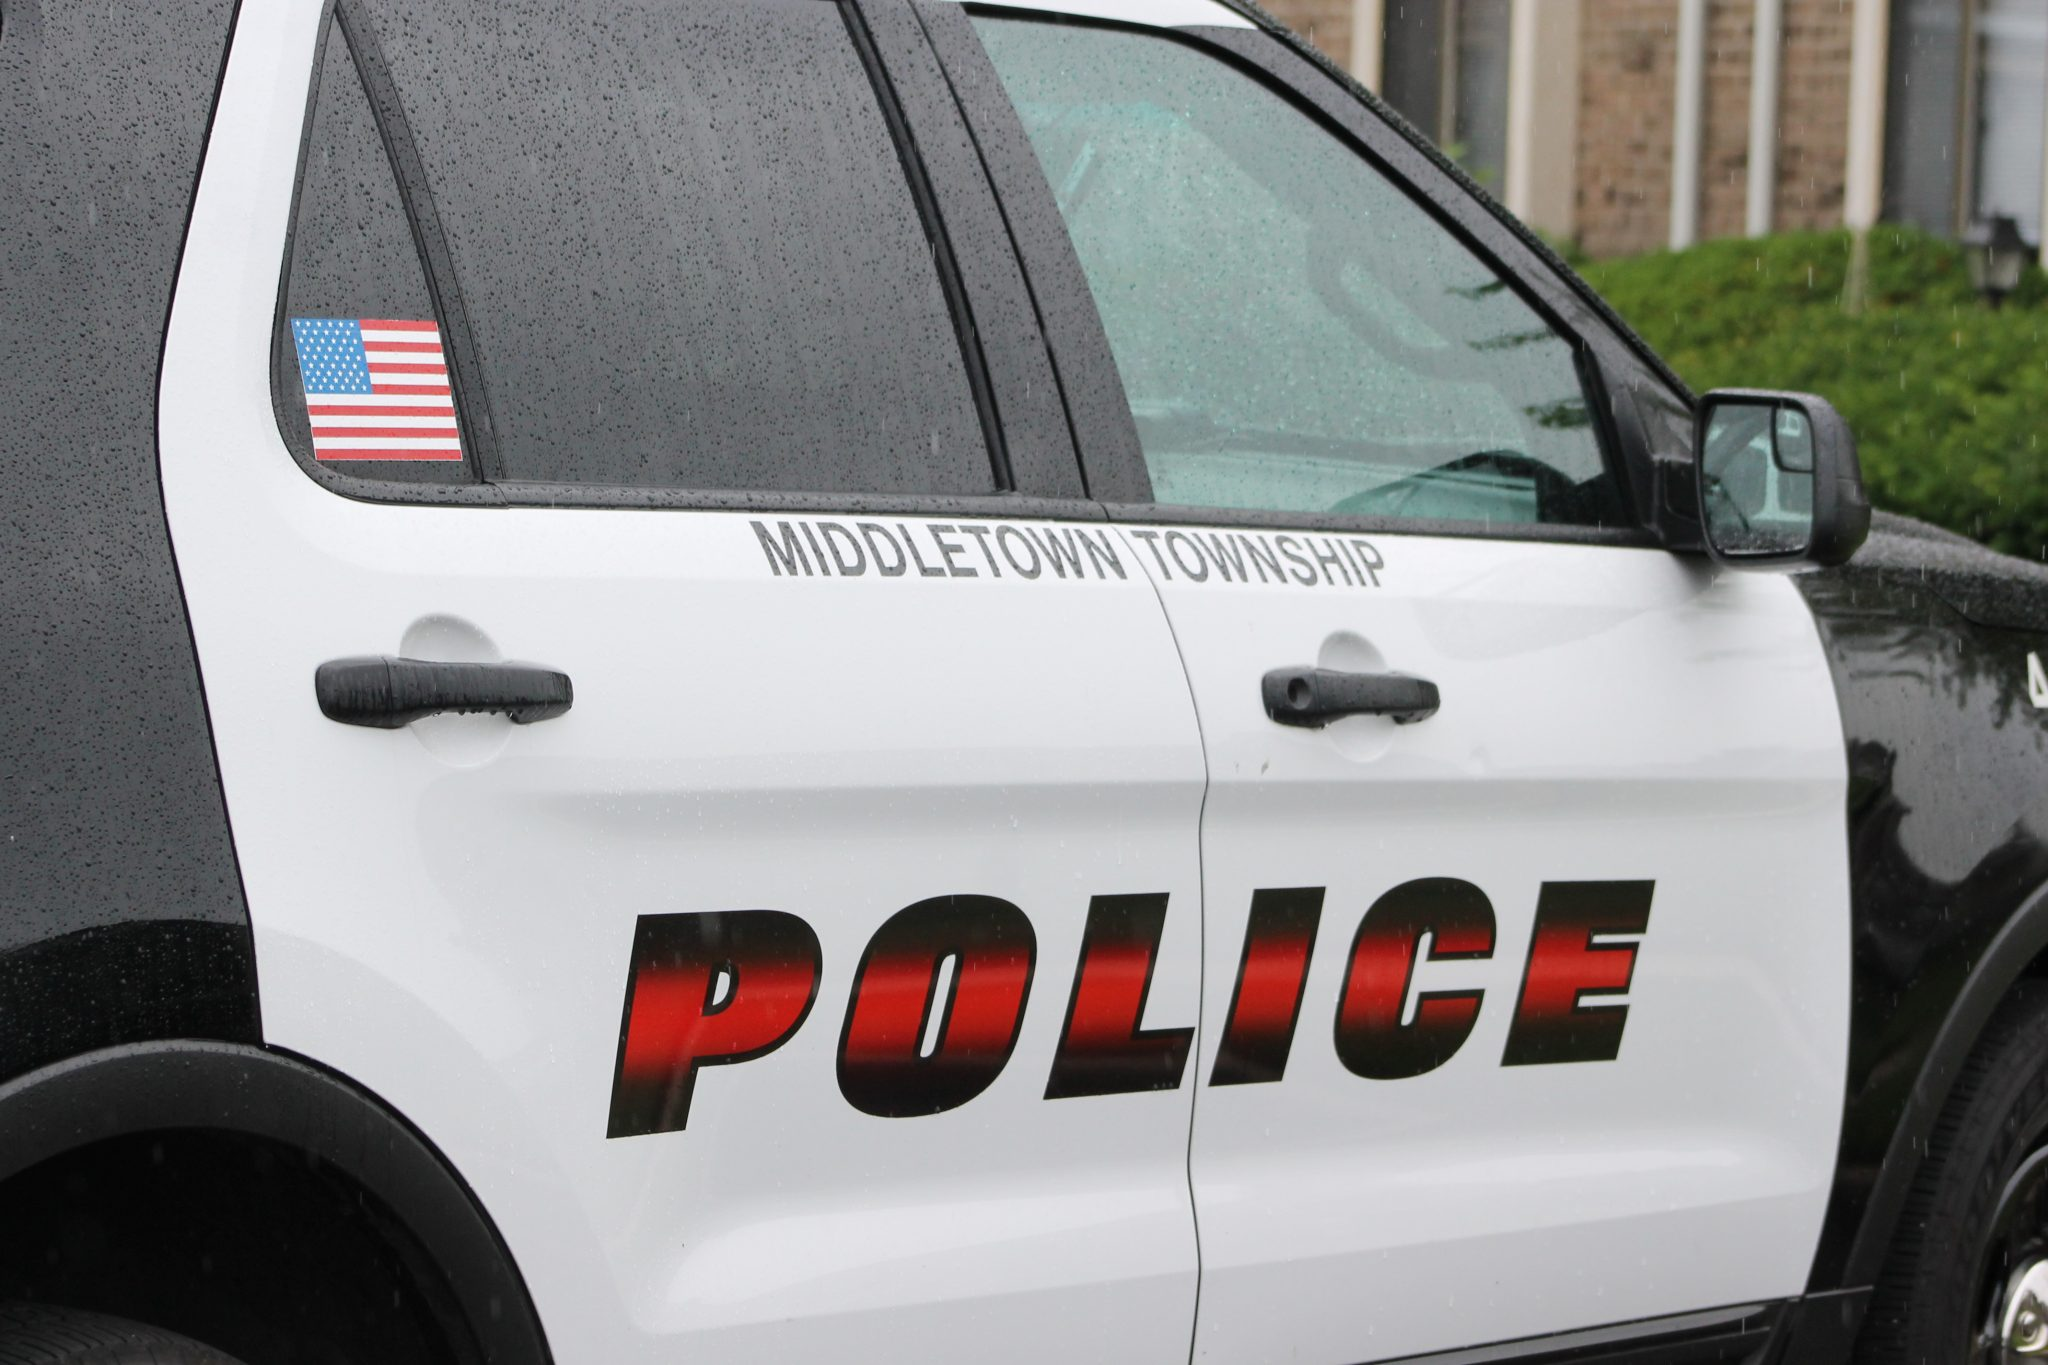 Police Log: Women Run From Store In Mall, Theft From Wallet & More